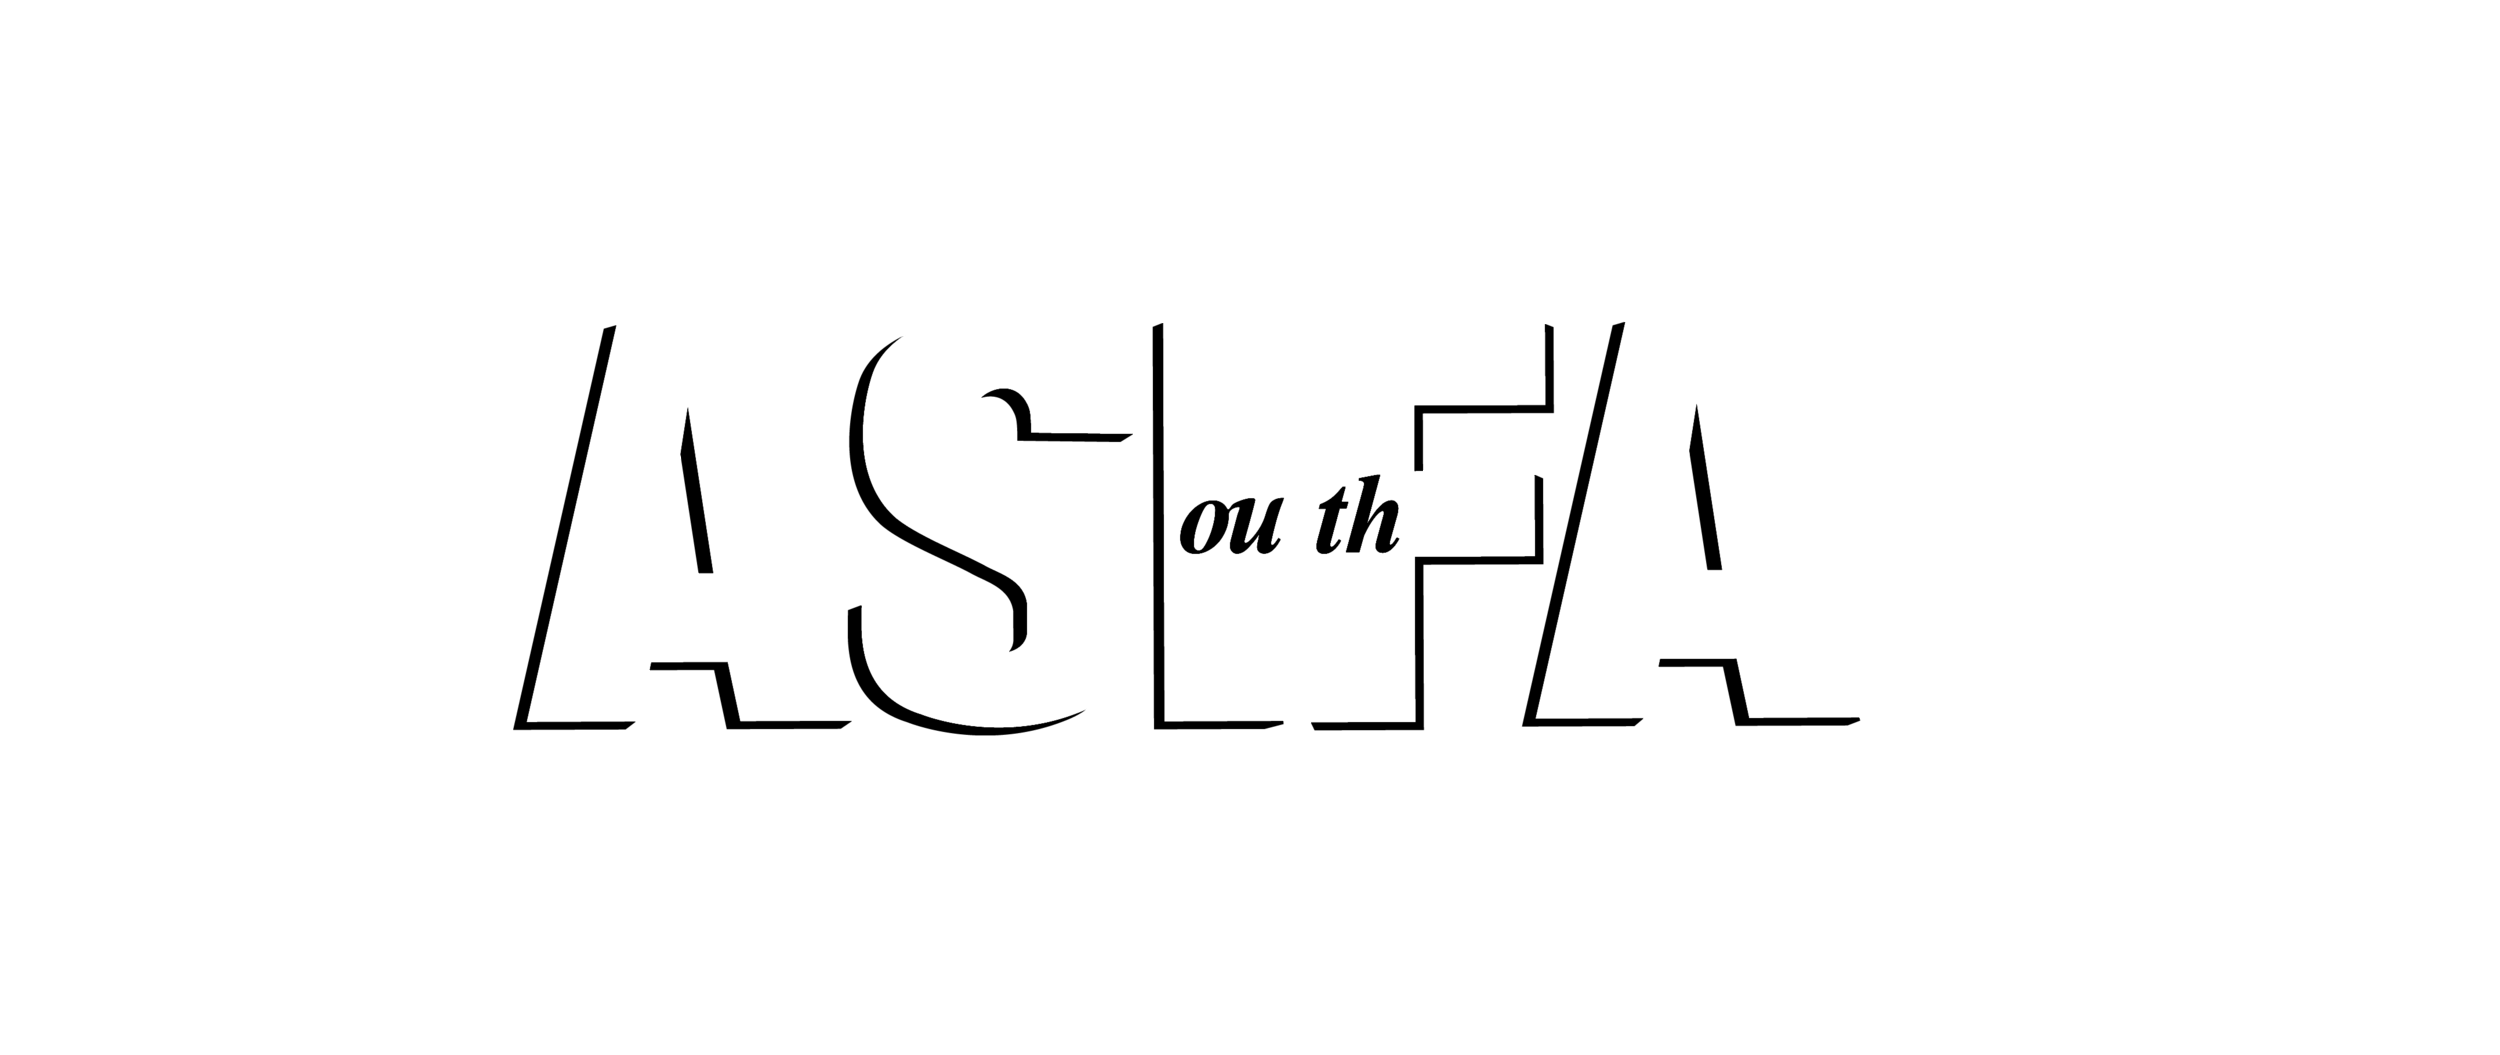 ASIFA South